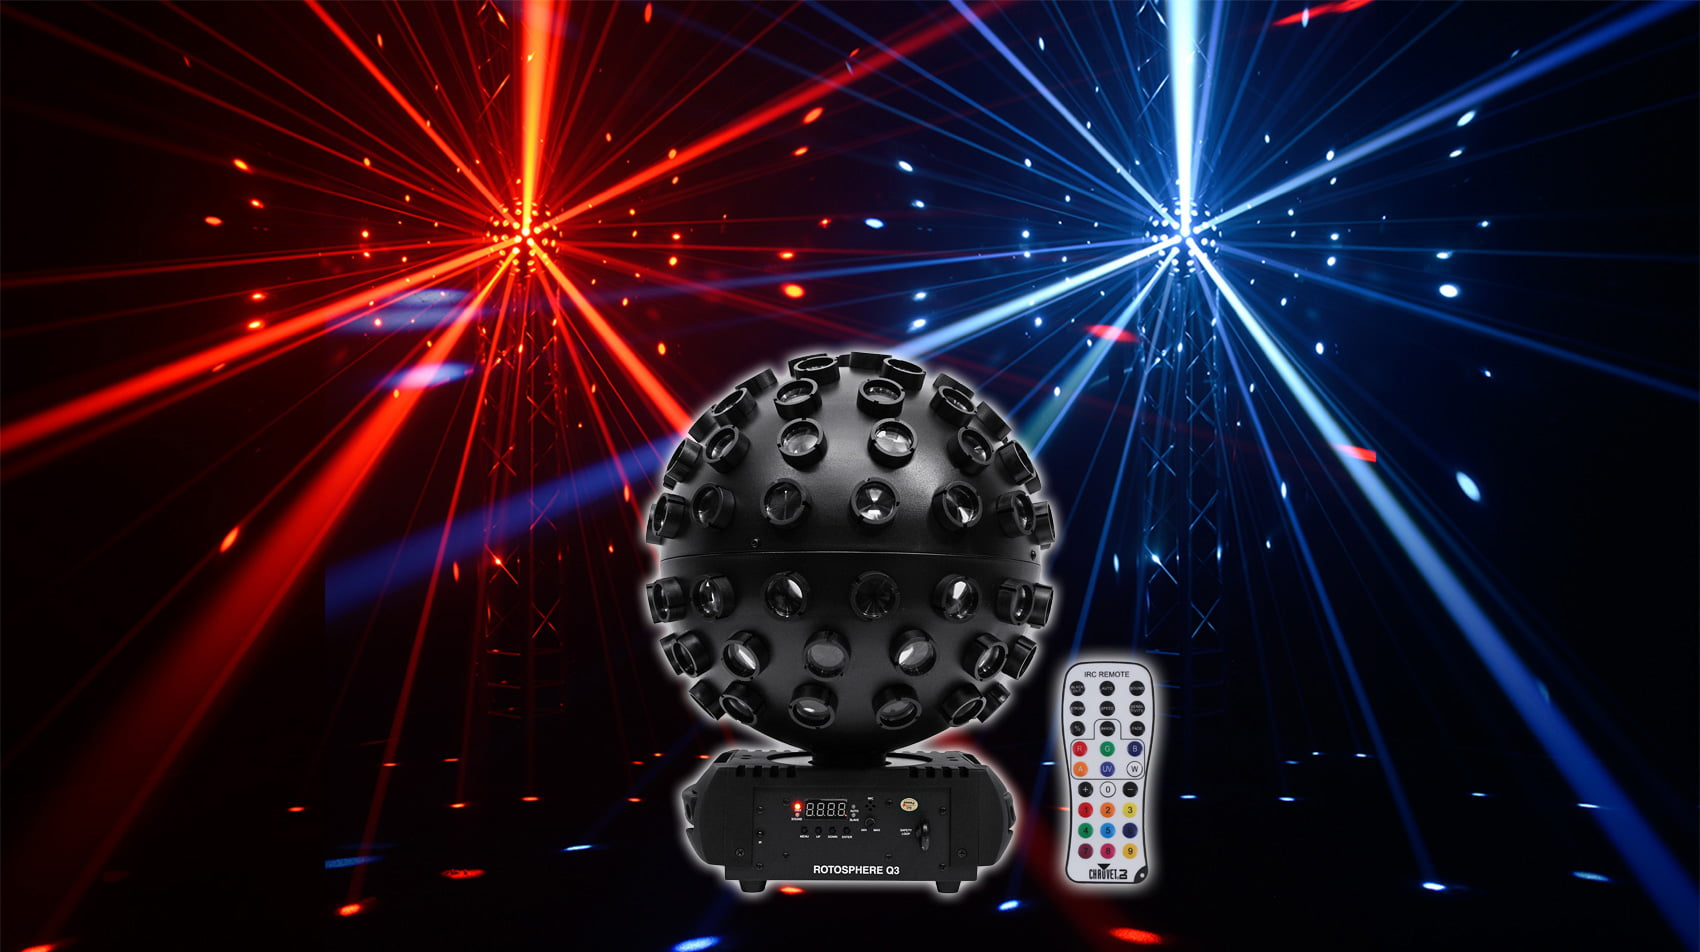 Chauvet DJ Rotosphere Q3 Mirror Ball Dance Floor DMX LED Effect Light + Remote by CHAUVET